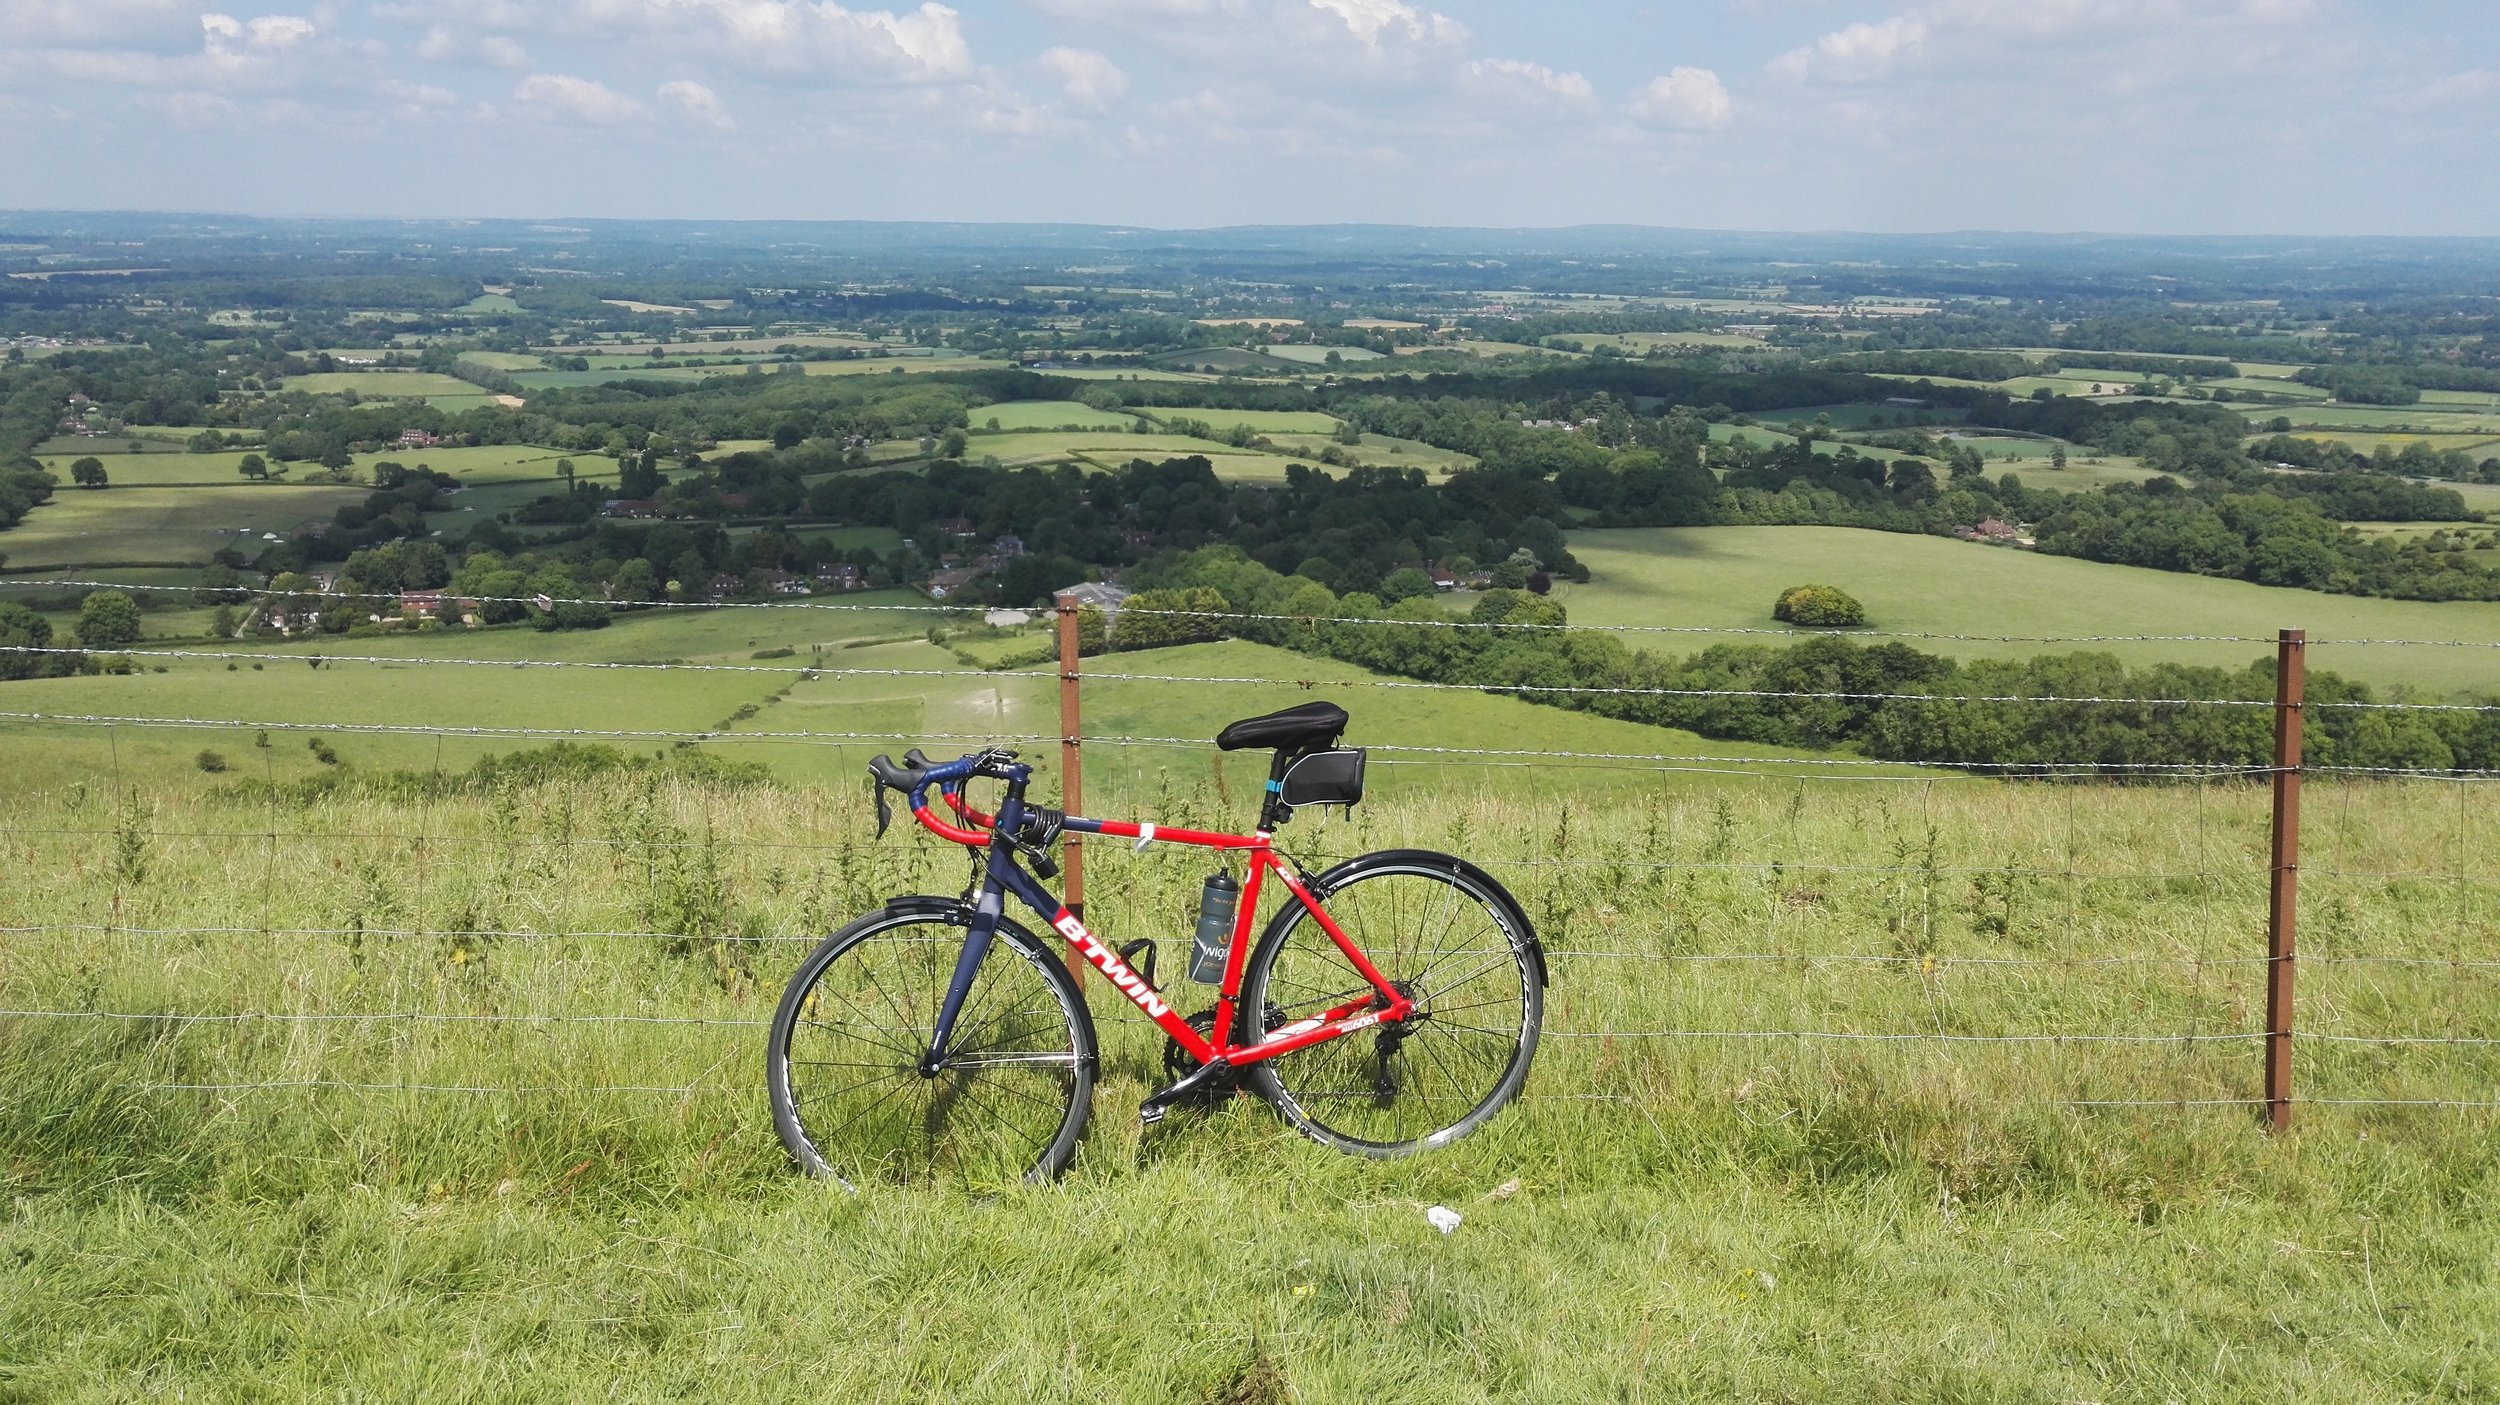 A view of Sussex from the top of Ditchling Beacon